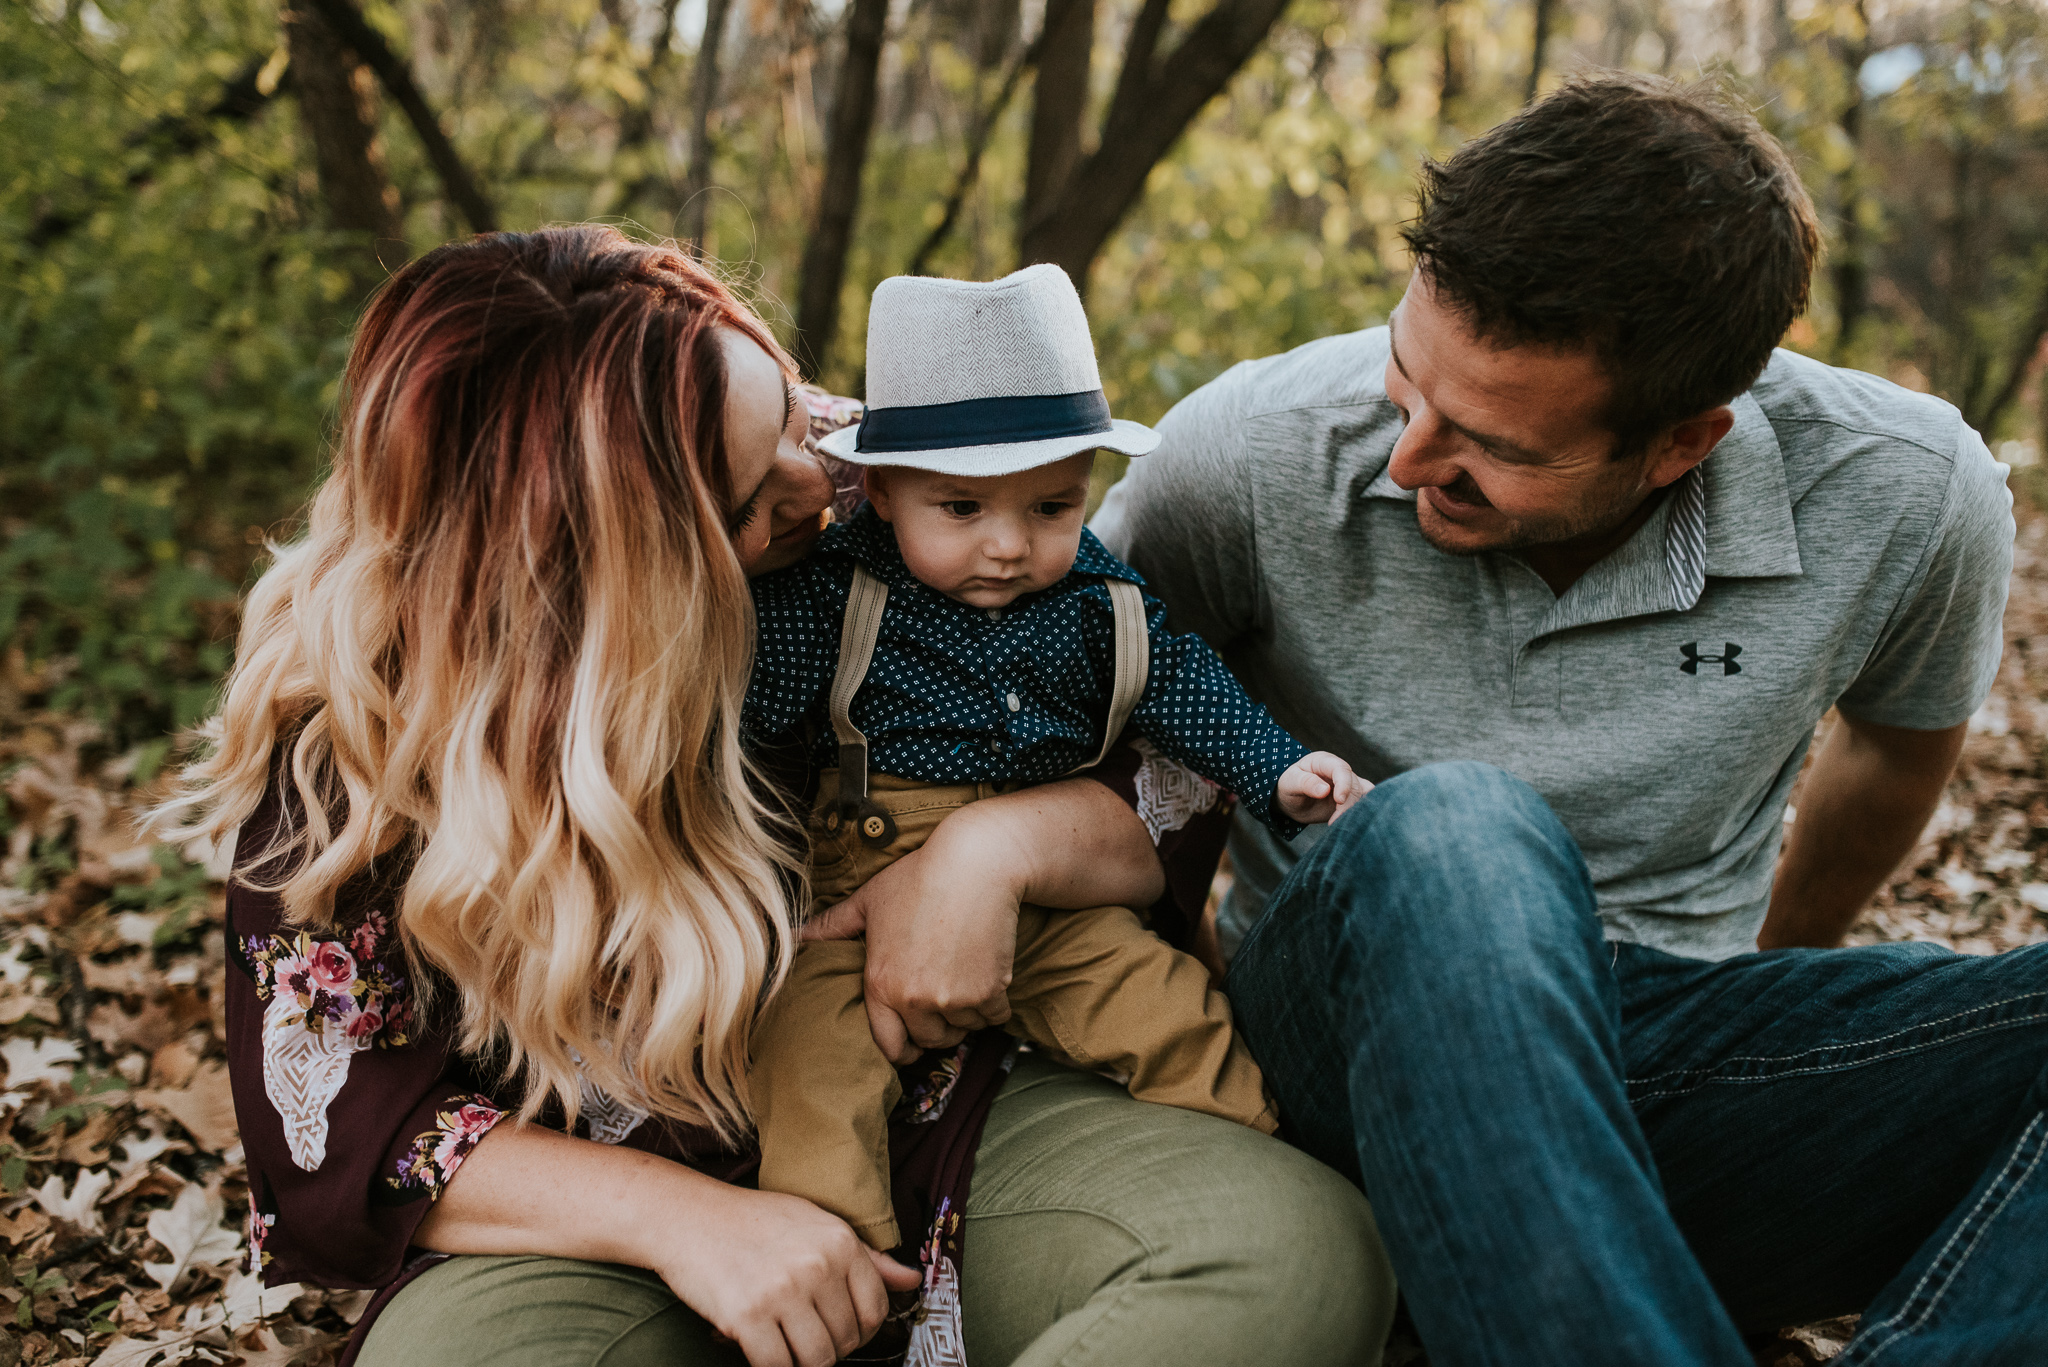 fall-family-picture-inspiration-outfit-kids-2.jpg